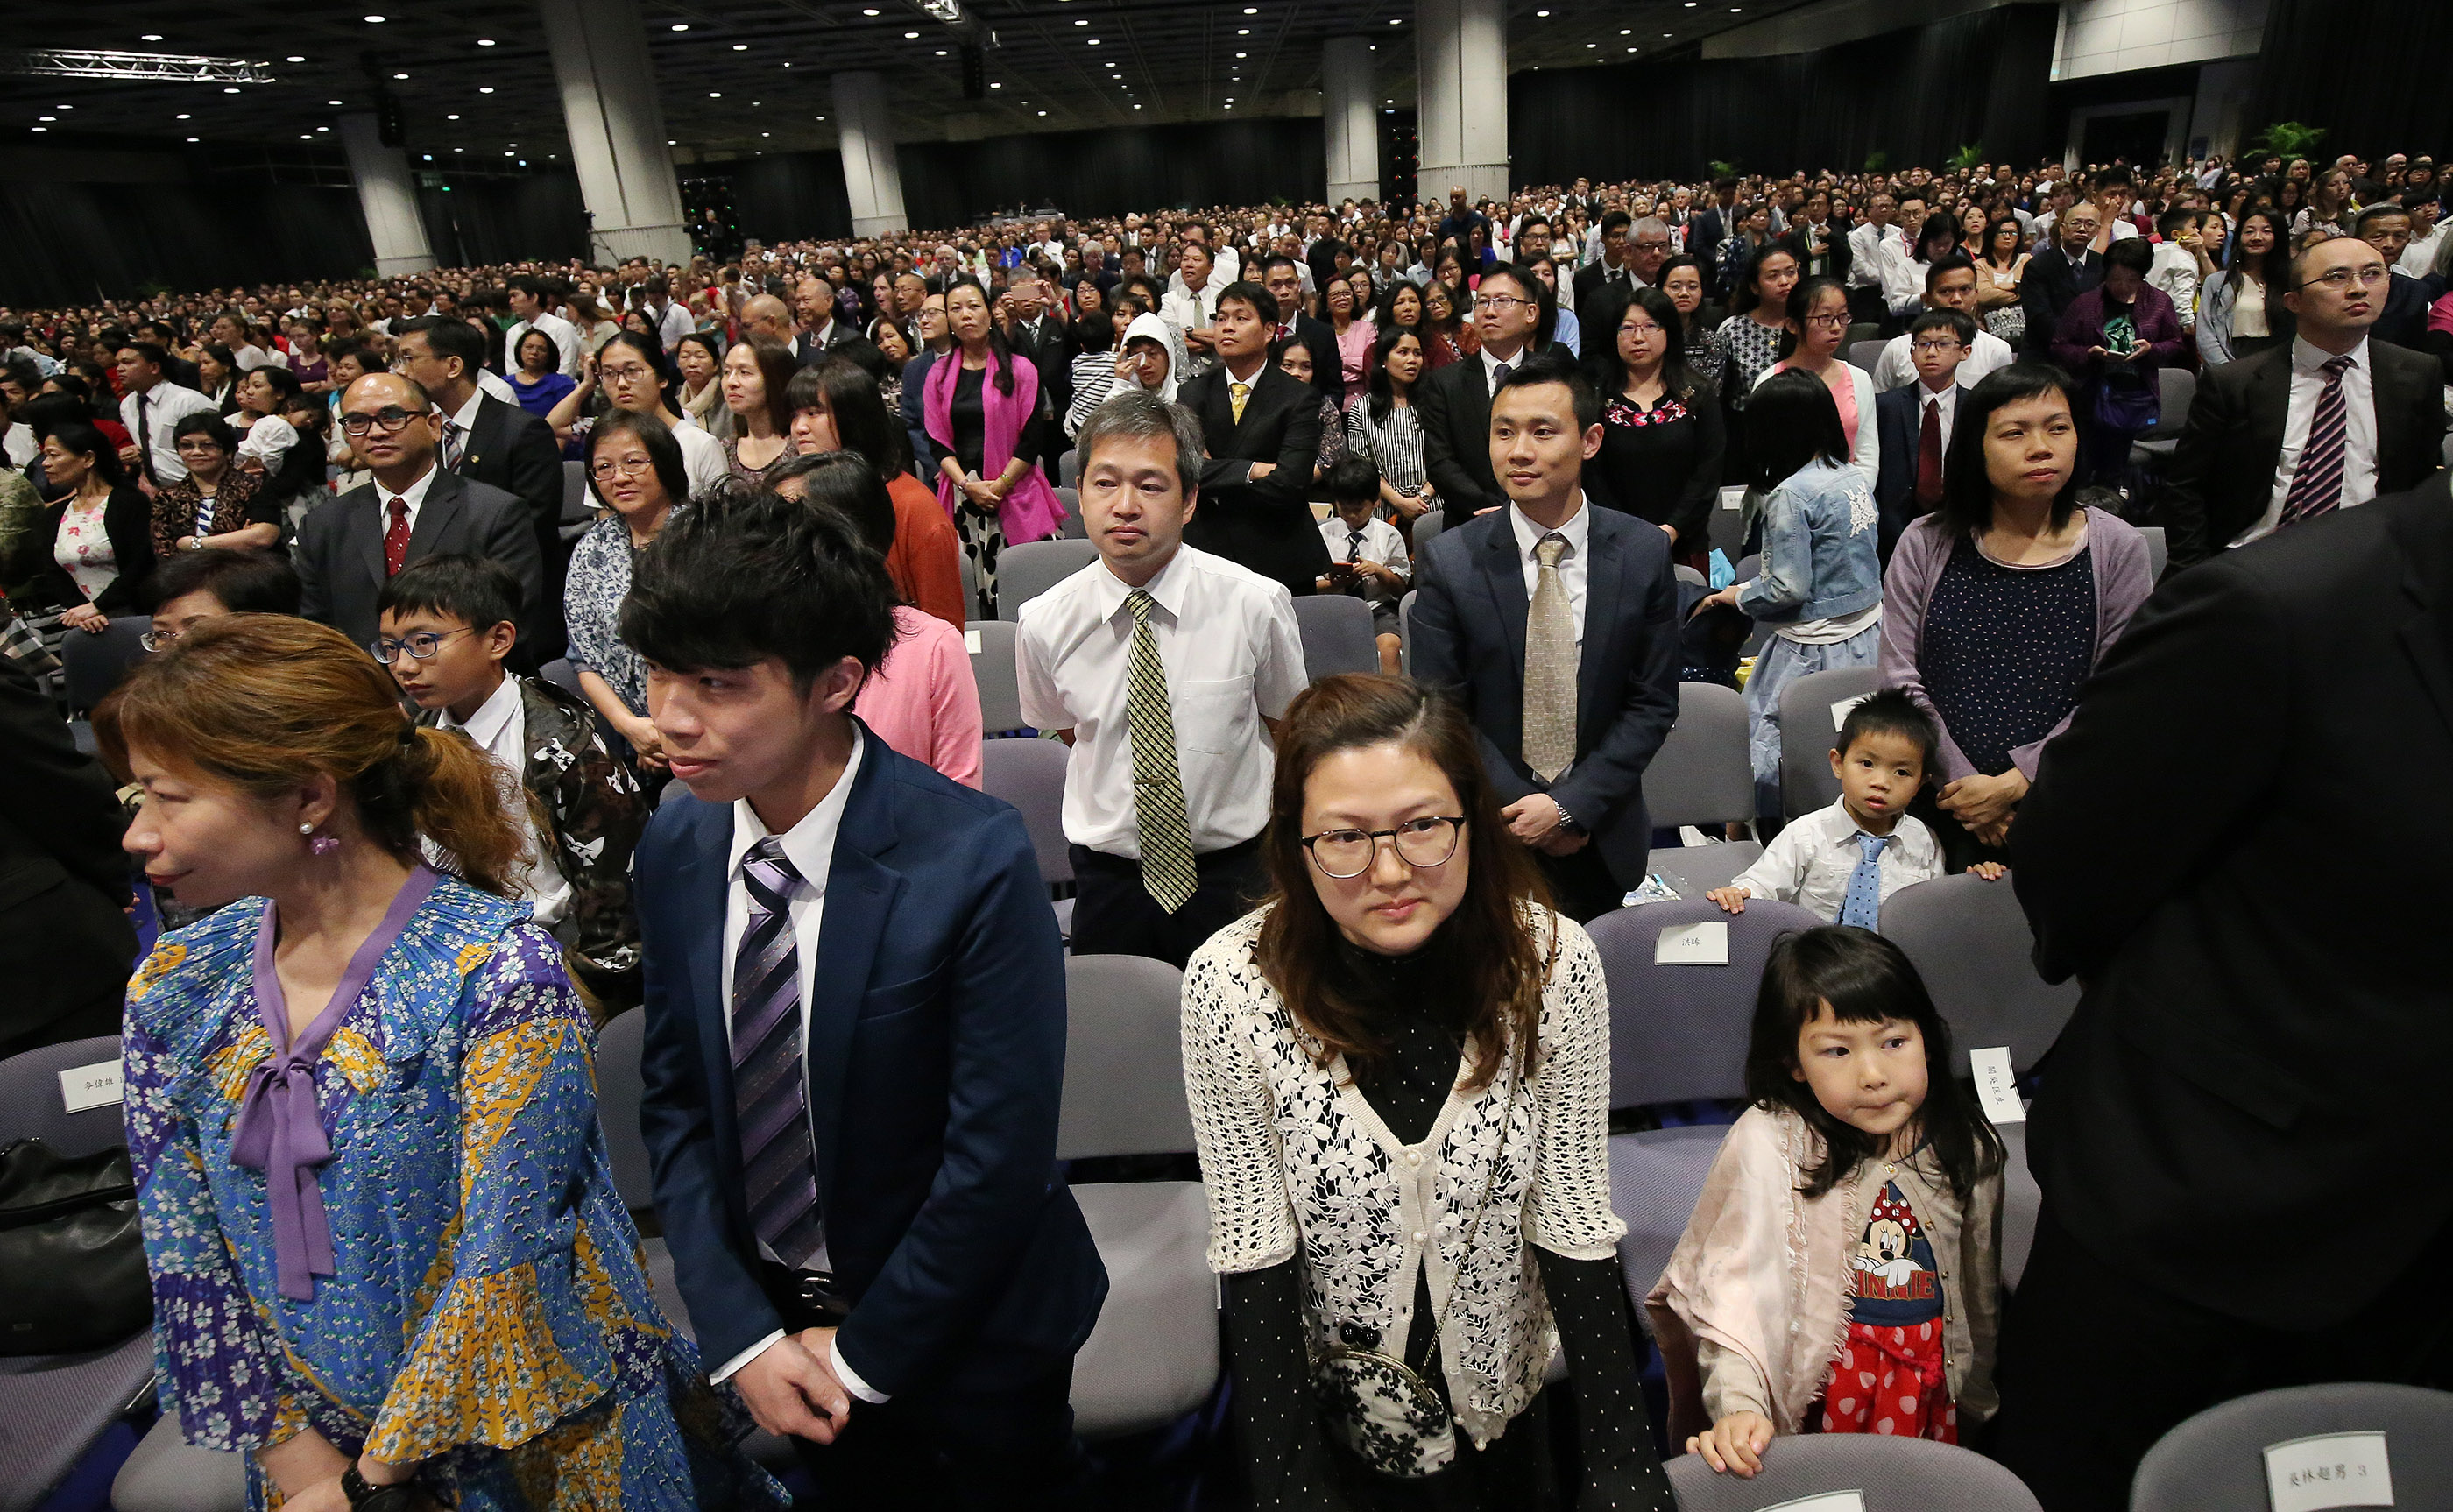 Attendees watch as President Russell M. Nelson leaves the stand after a devotional in Hong Kong on Saturday, April 21, 2018.